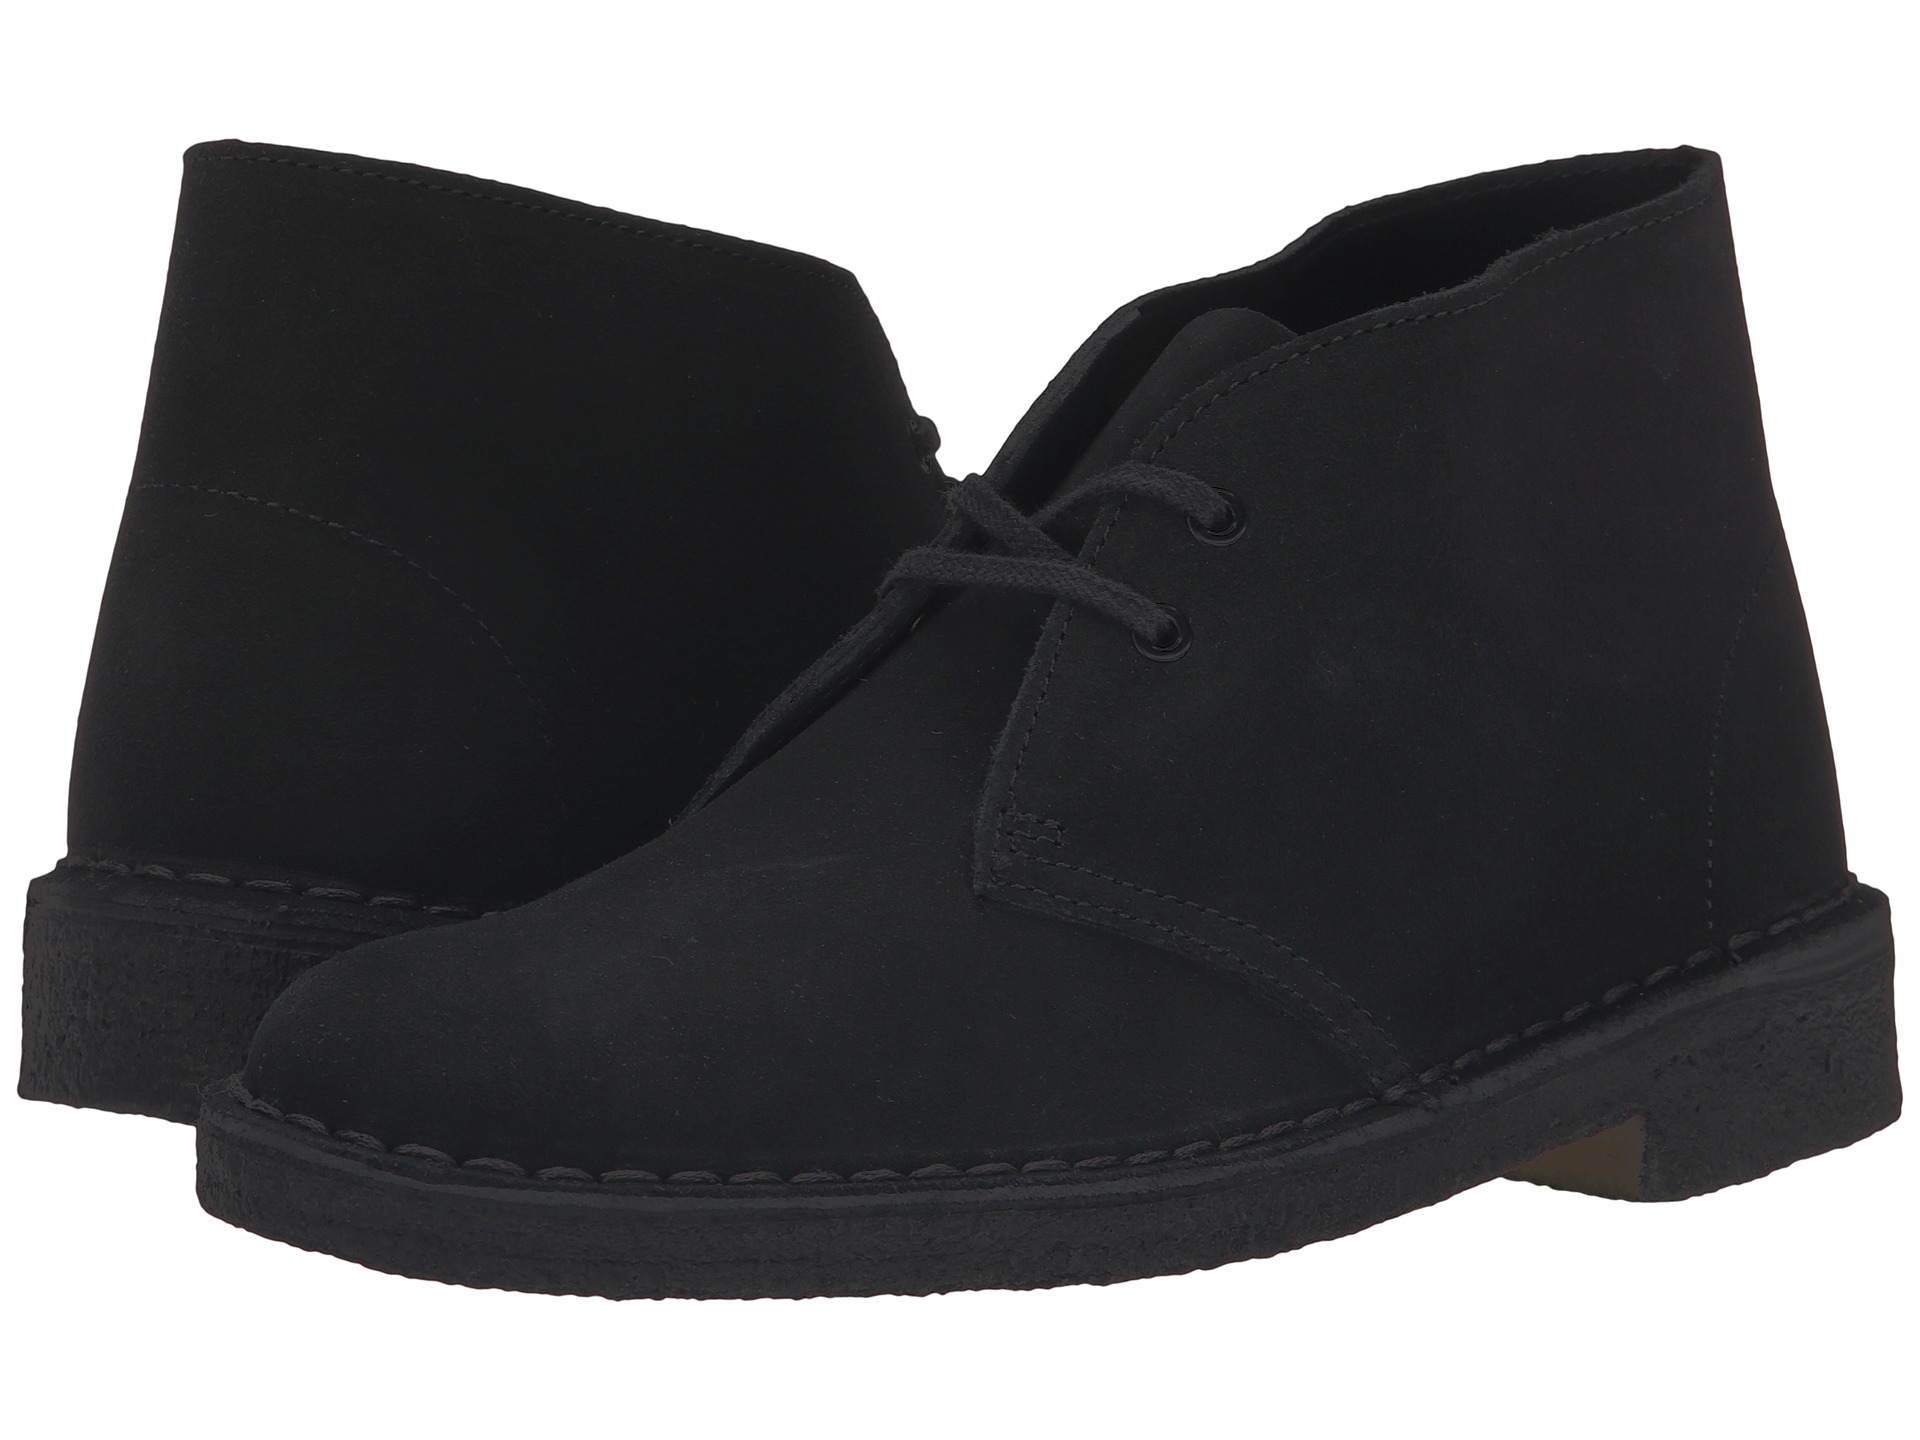 Find great deals on eBay for clarks desert boots black. Shop with confidence.